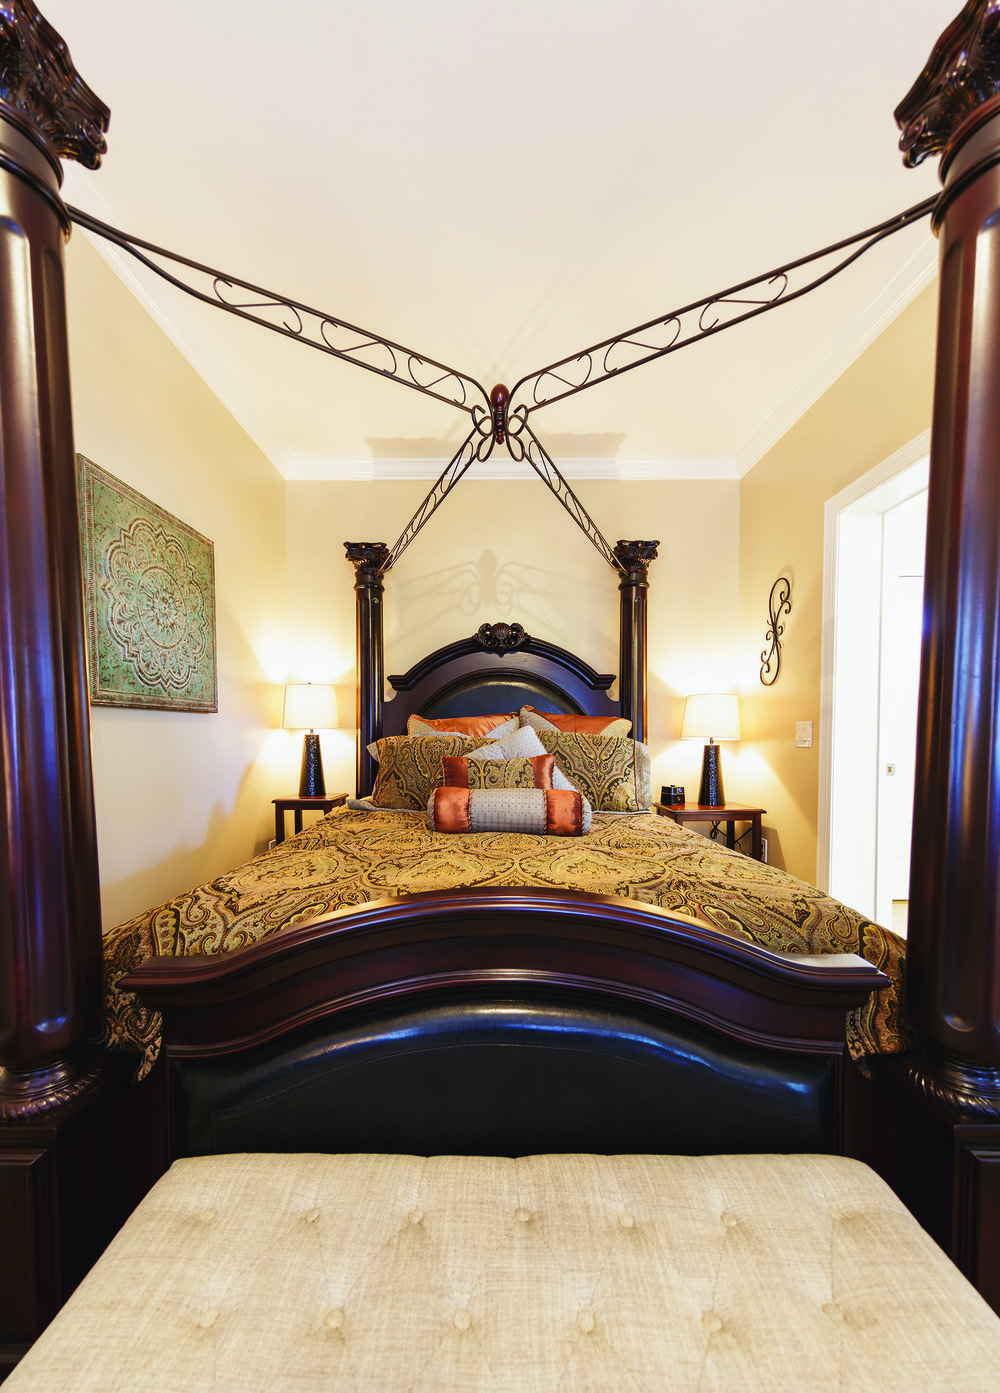 _MG_9387_BridalCottage_Bed small jpg.jpg